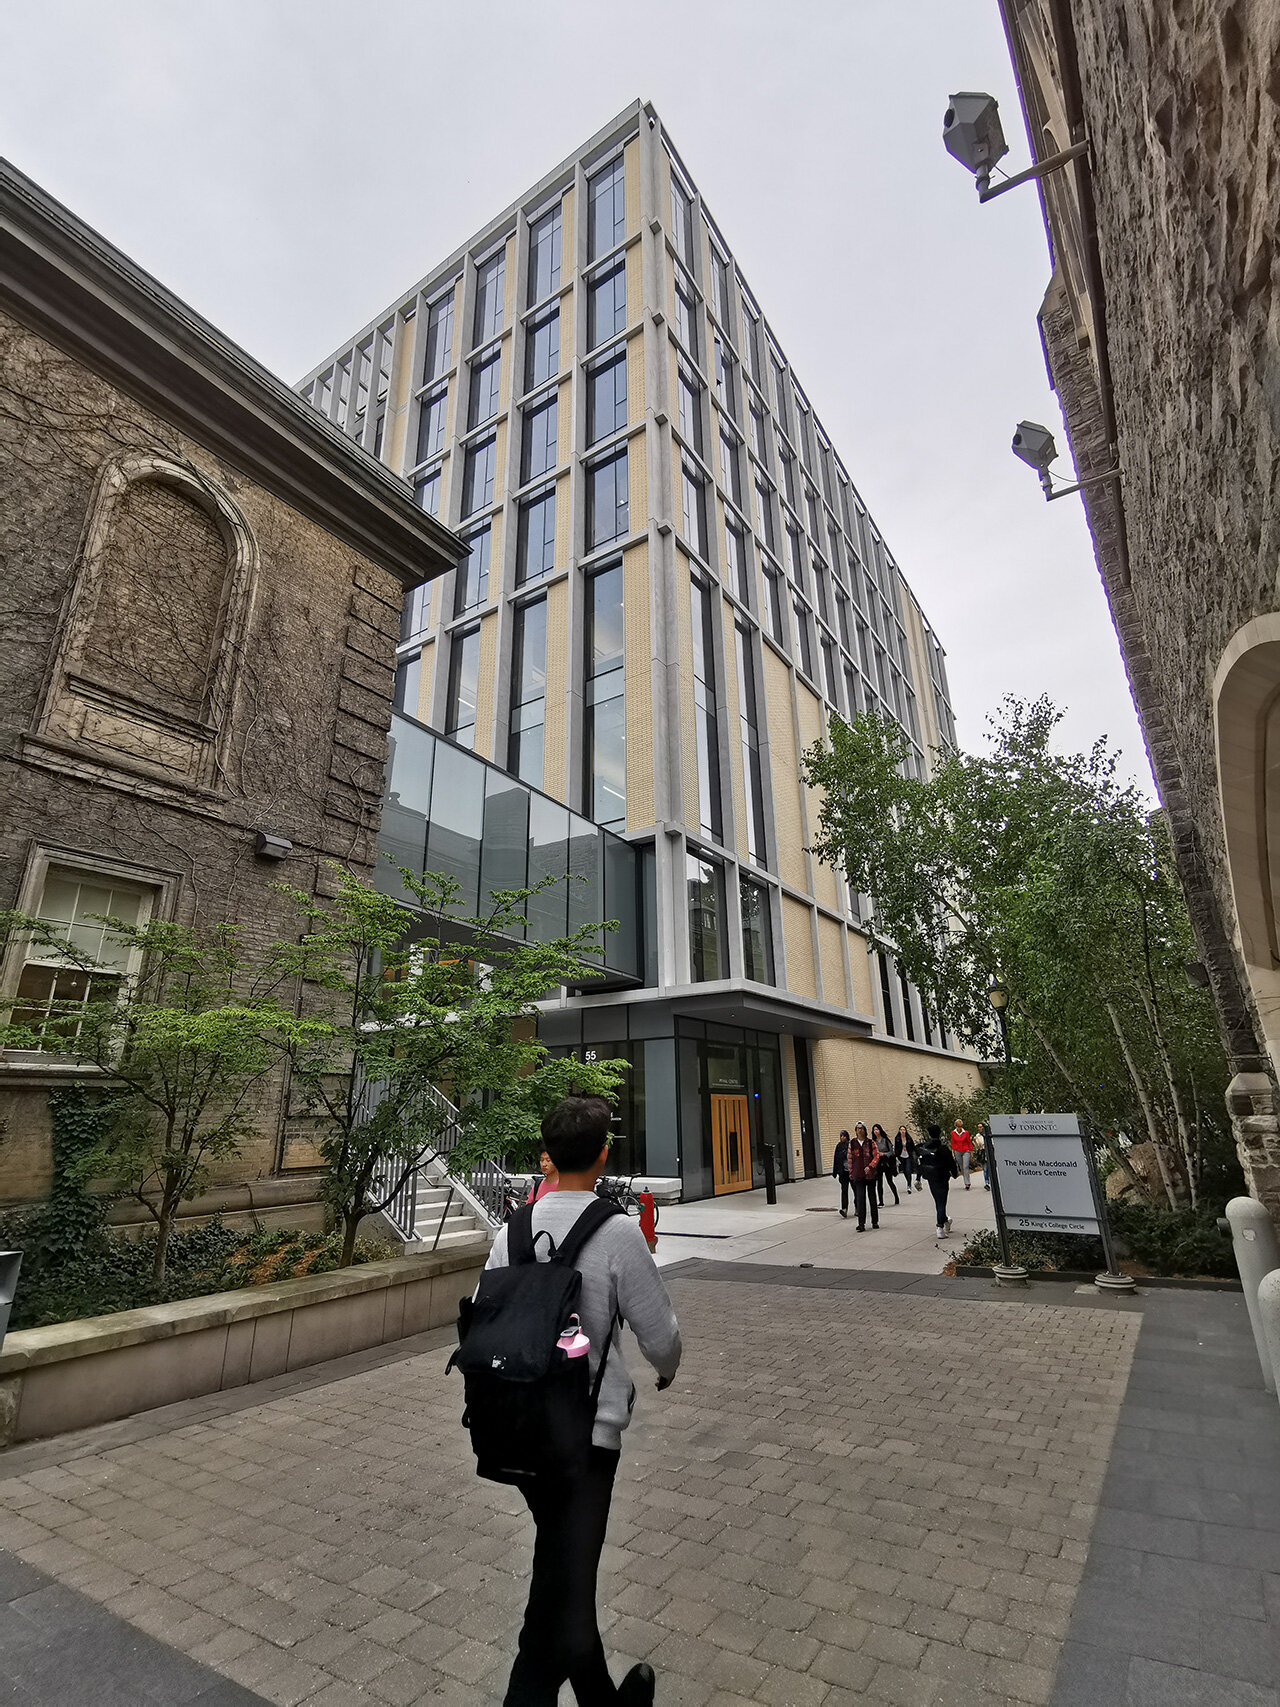 Love how the old meets new with the University of Toronto building design. A glass bridge connects the modern taller building into a brick building.